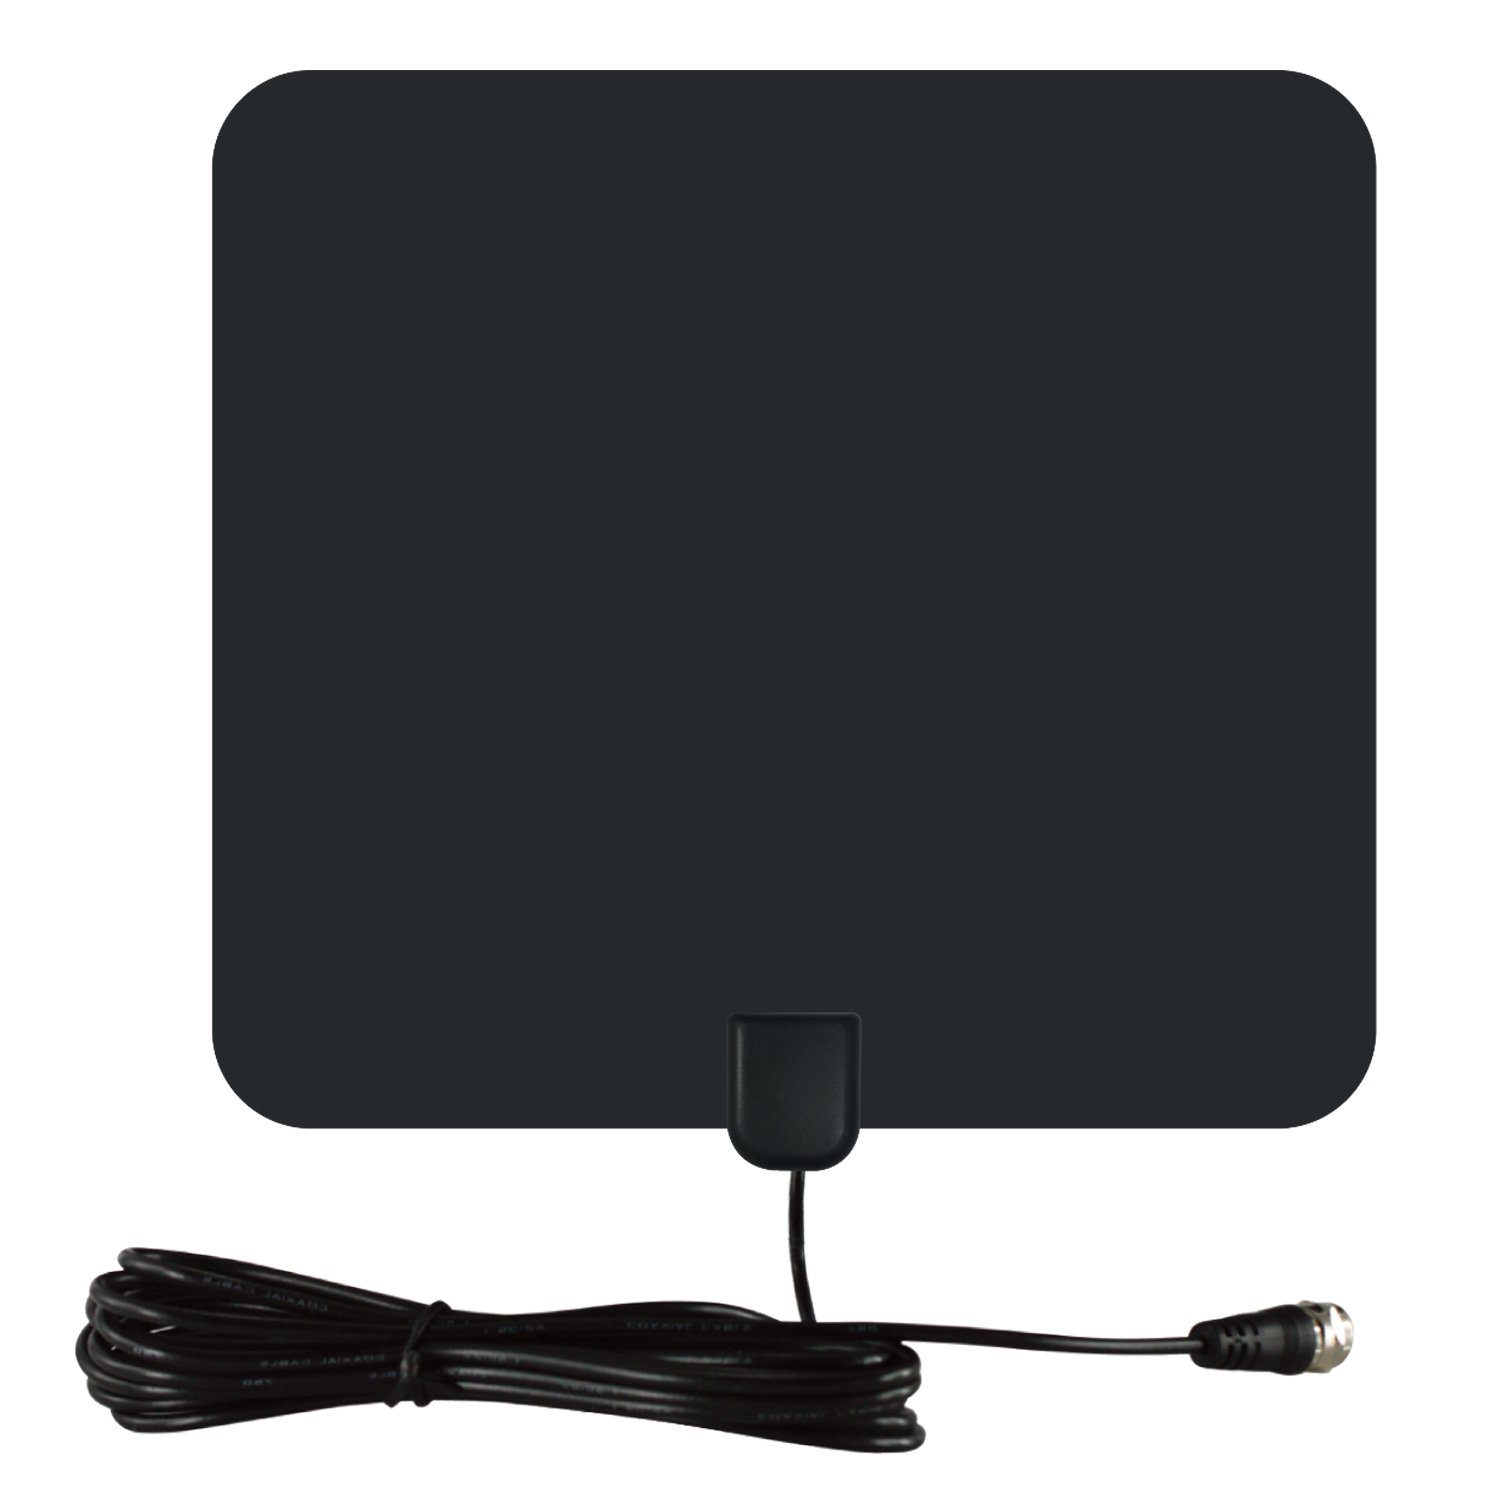 Alotm Digital Indoor TV Antenna 1080P 50 Mile Range Amplified HDTV TV HD Antenna with Detachable Amplifier Signal Booster, 13.1 ft Highest Performance Coax Cable USB Powered Amplified Antenna